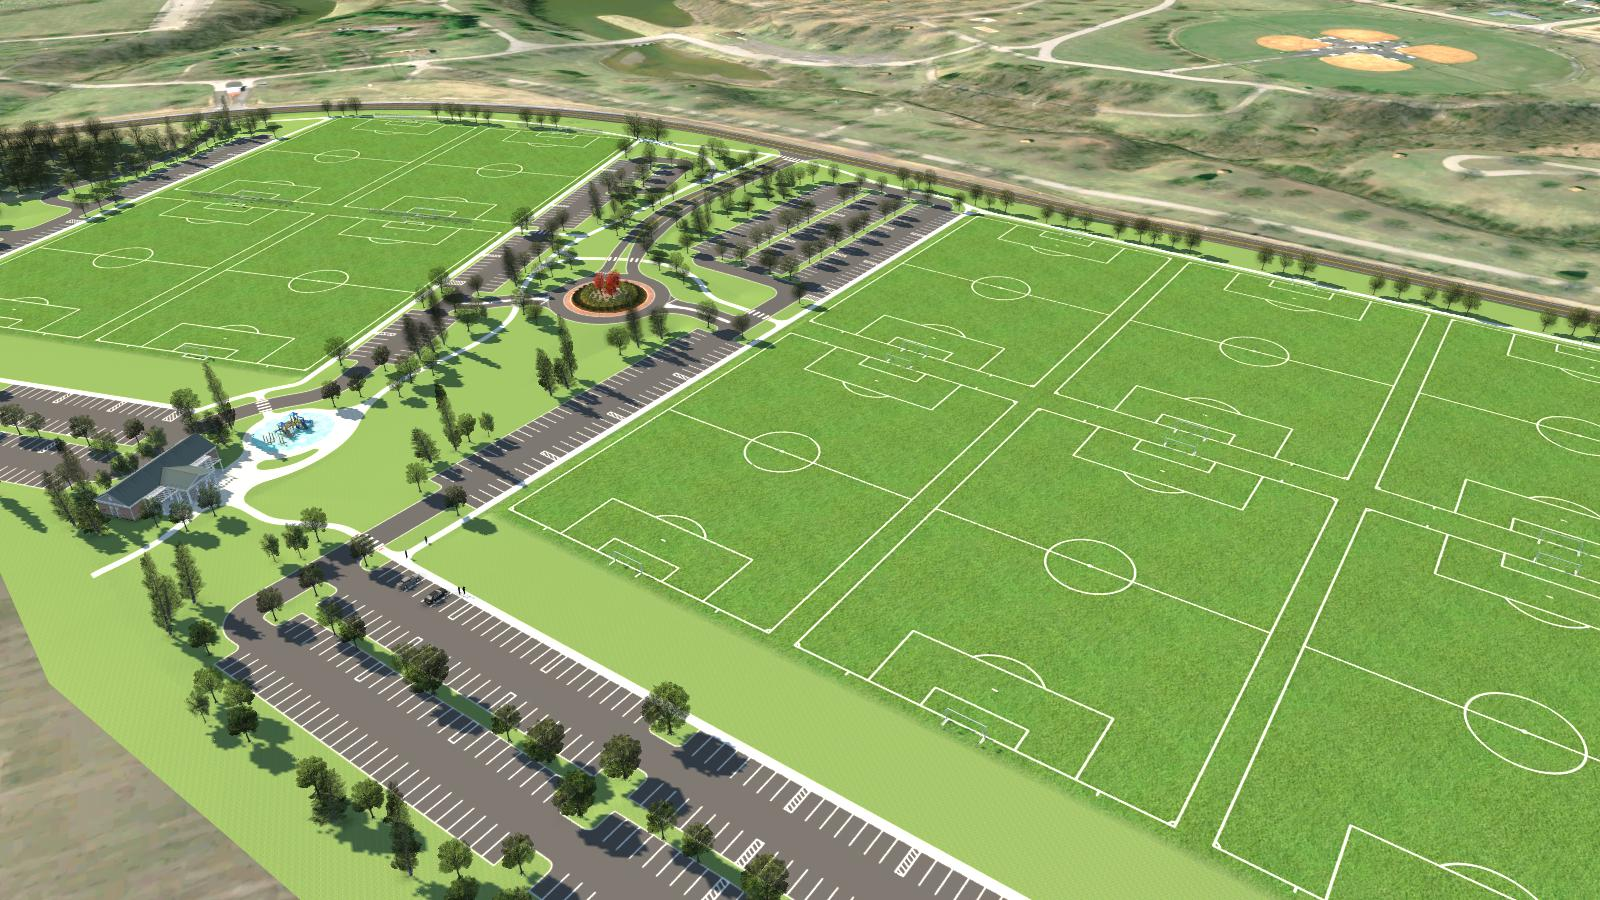 10 Things to Consider When Planning a Sports Park